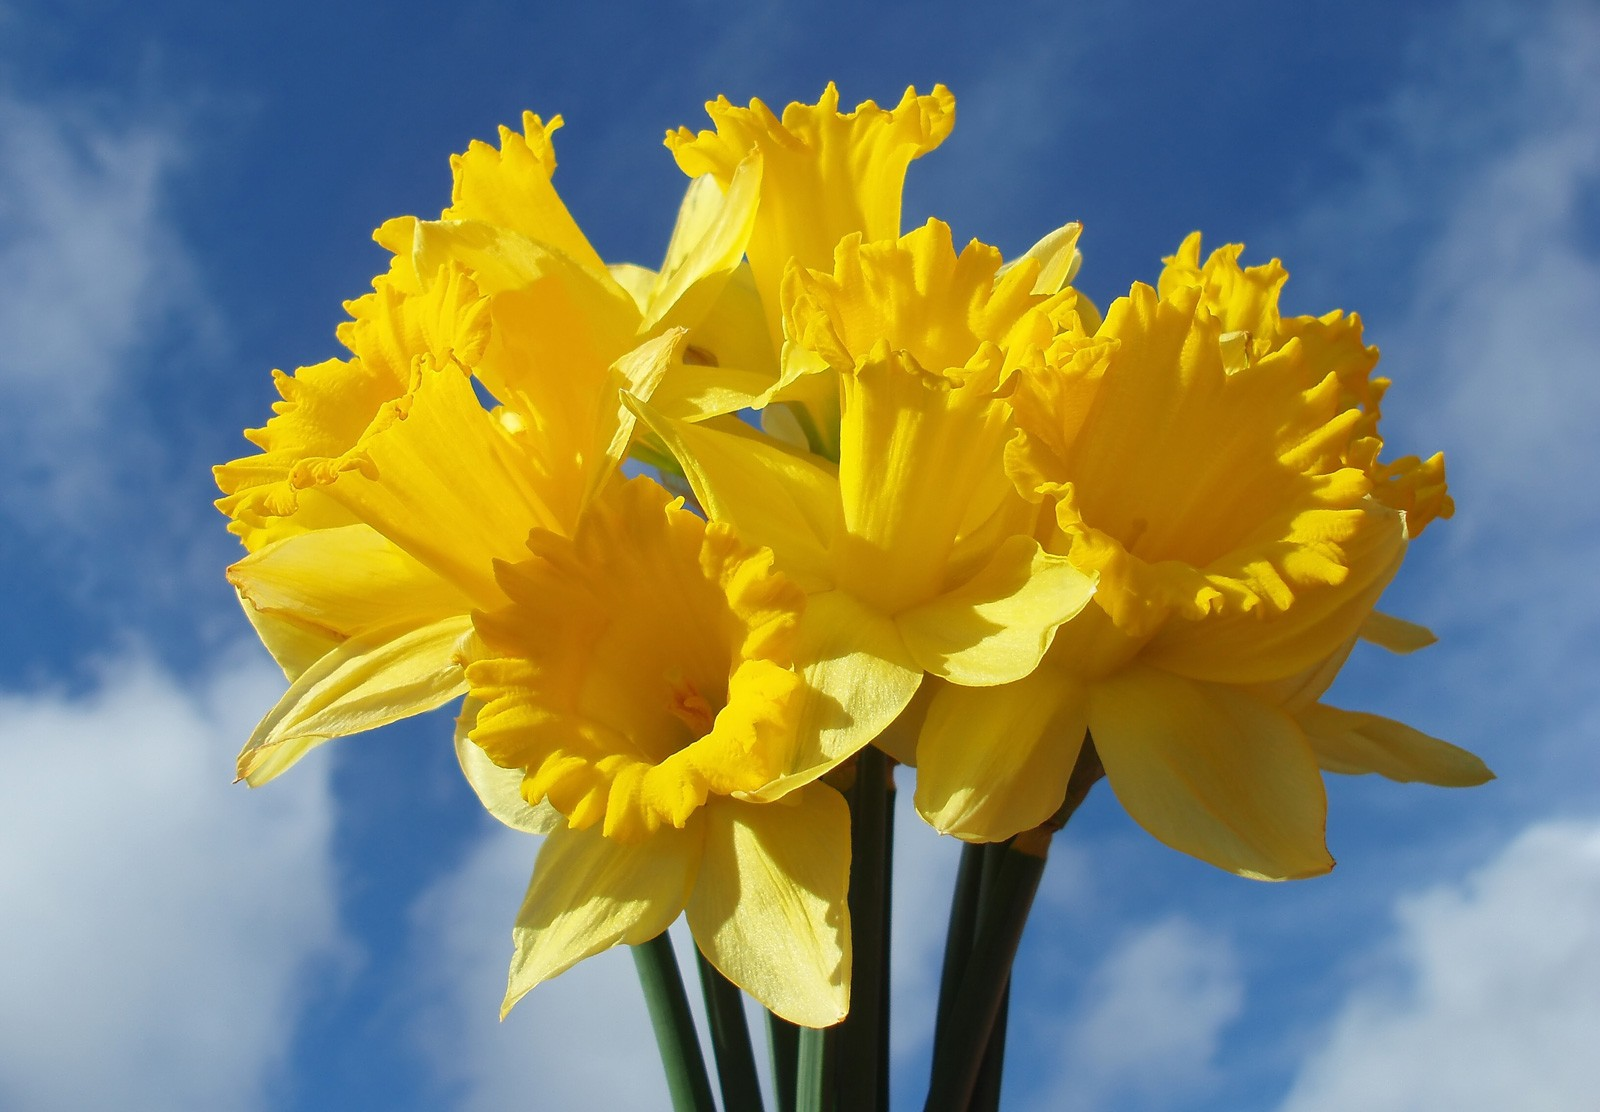 bfb8ecb09 Super Symbolic Daffodil Meanings on Whats-Your-Sign